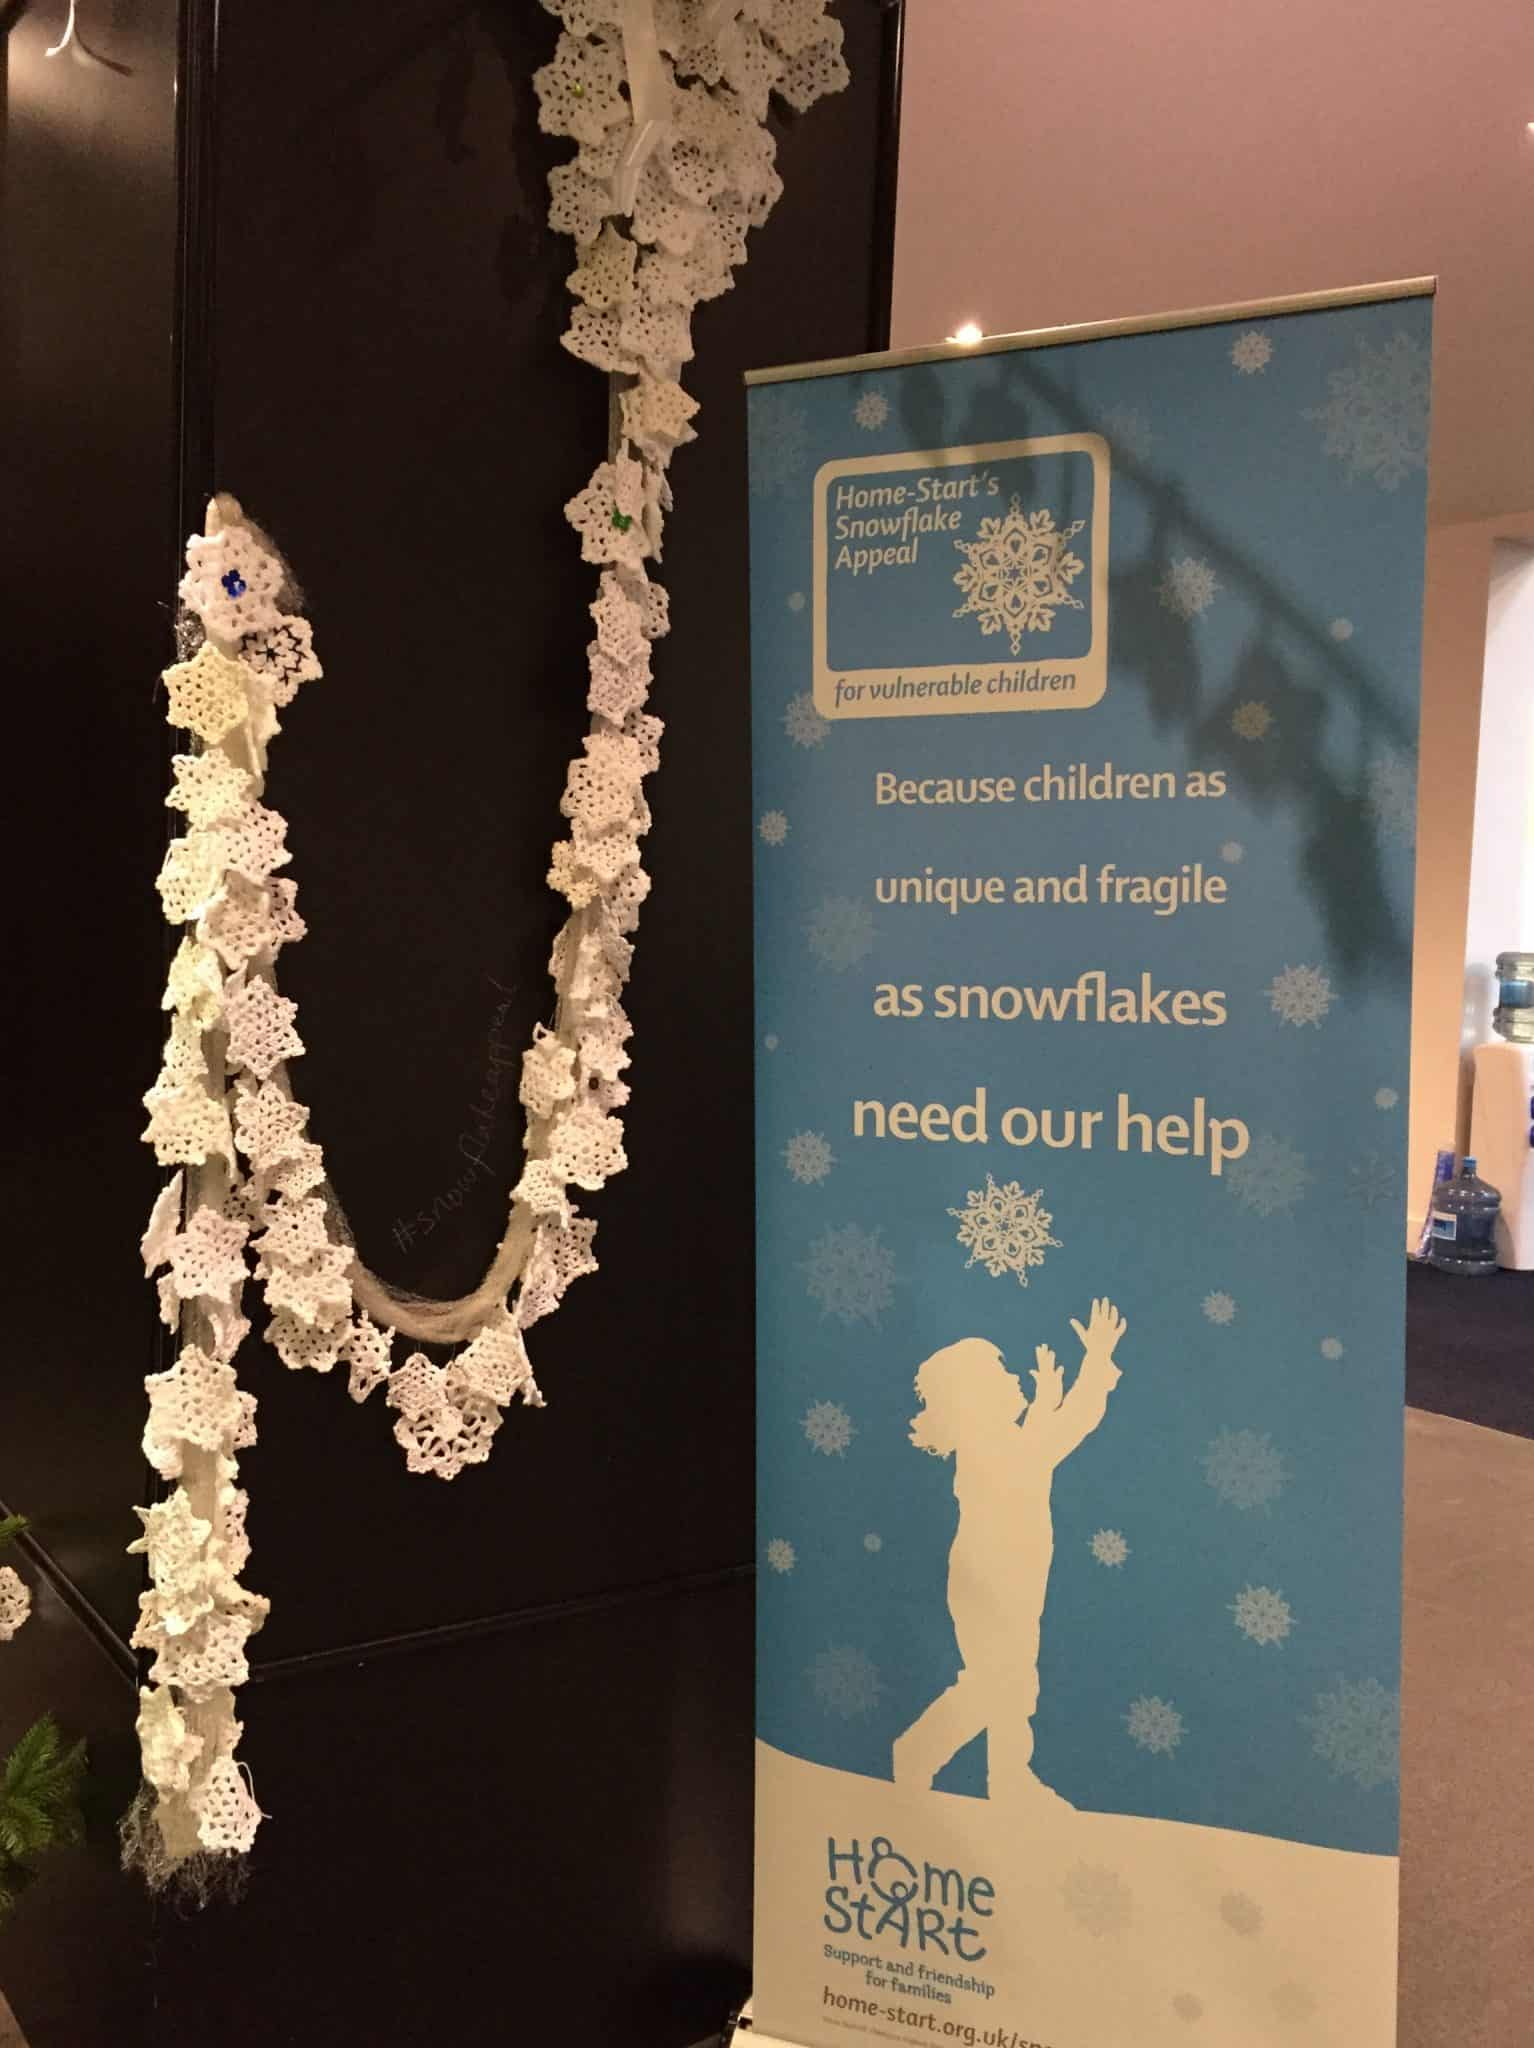 Home-Start's Snowflake Appeal